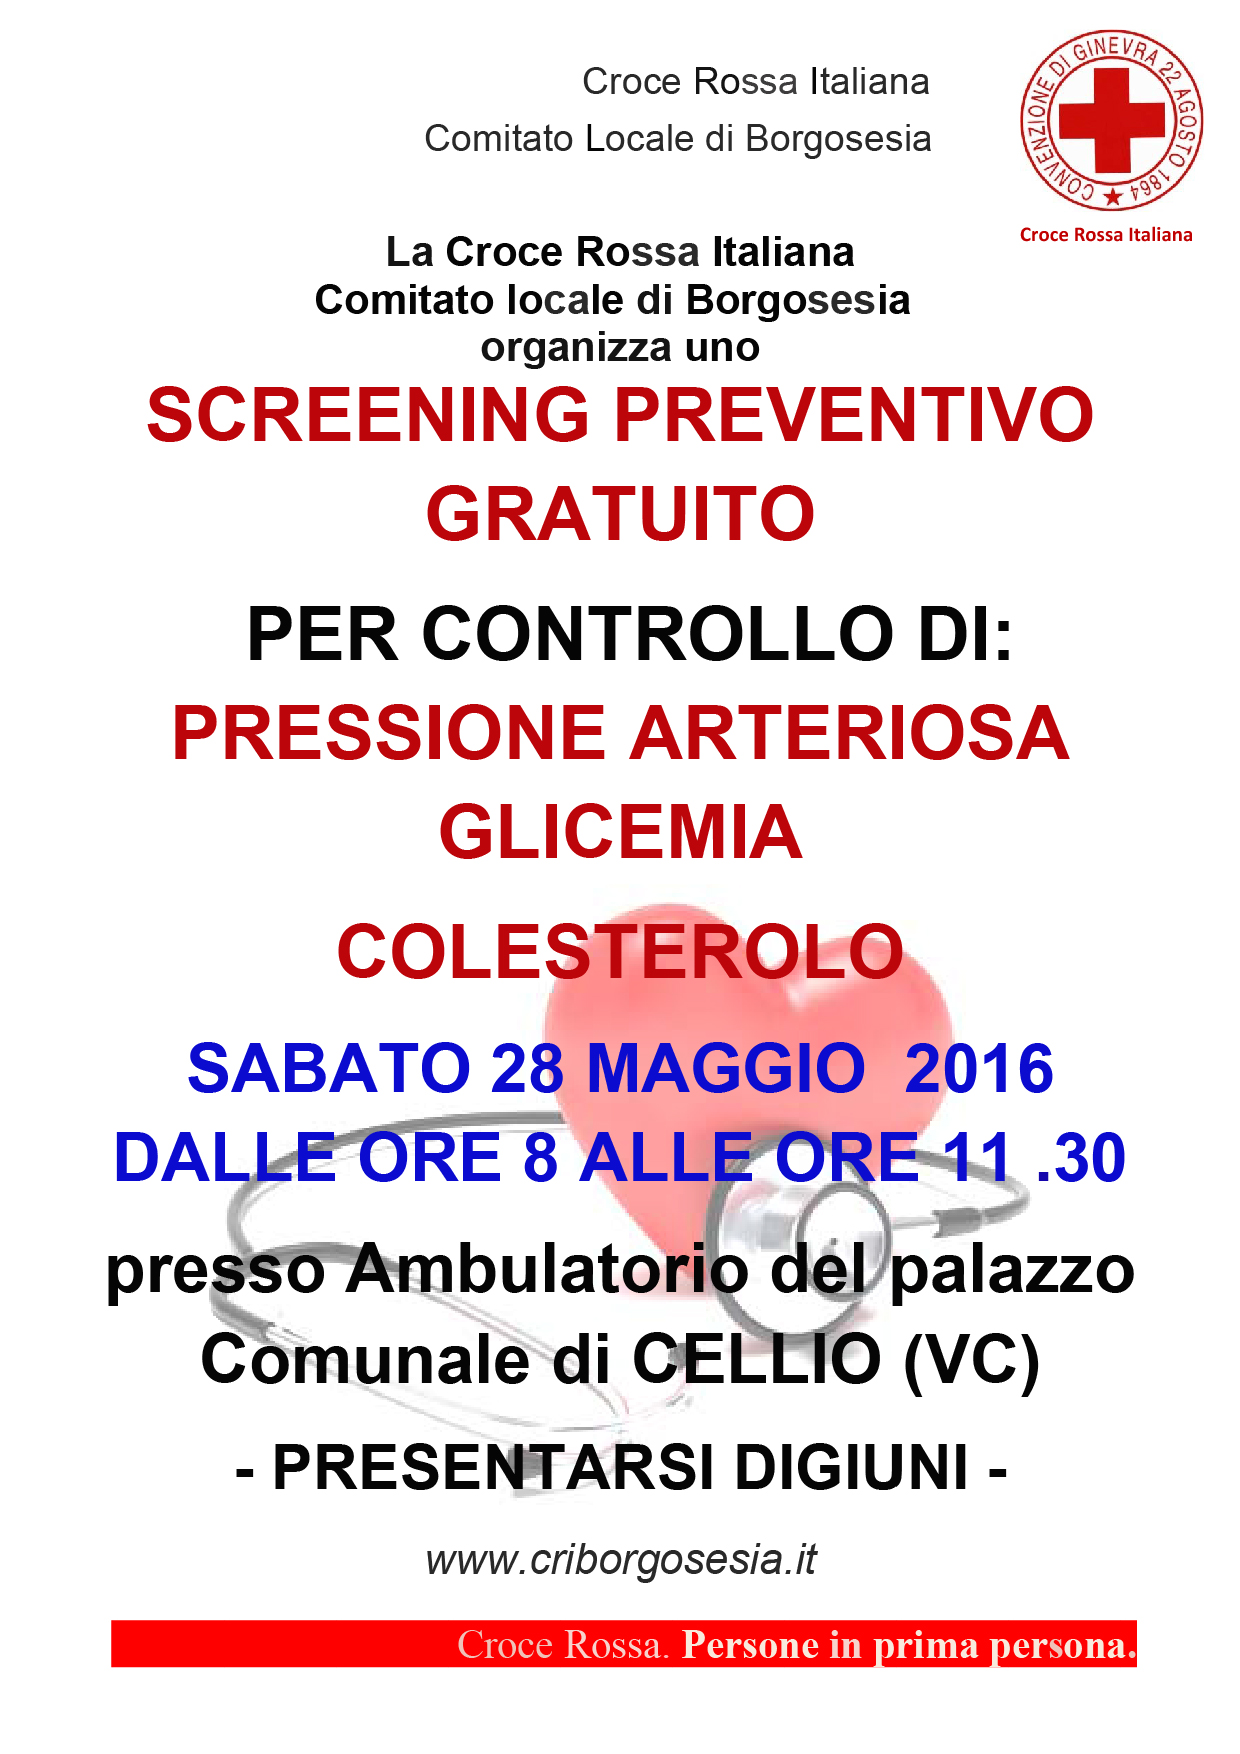 Croce Rossa Italiana Screening Plello_280416-01